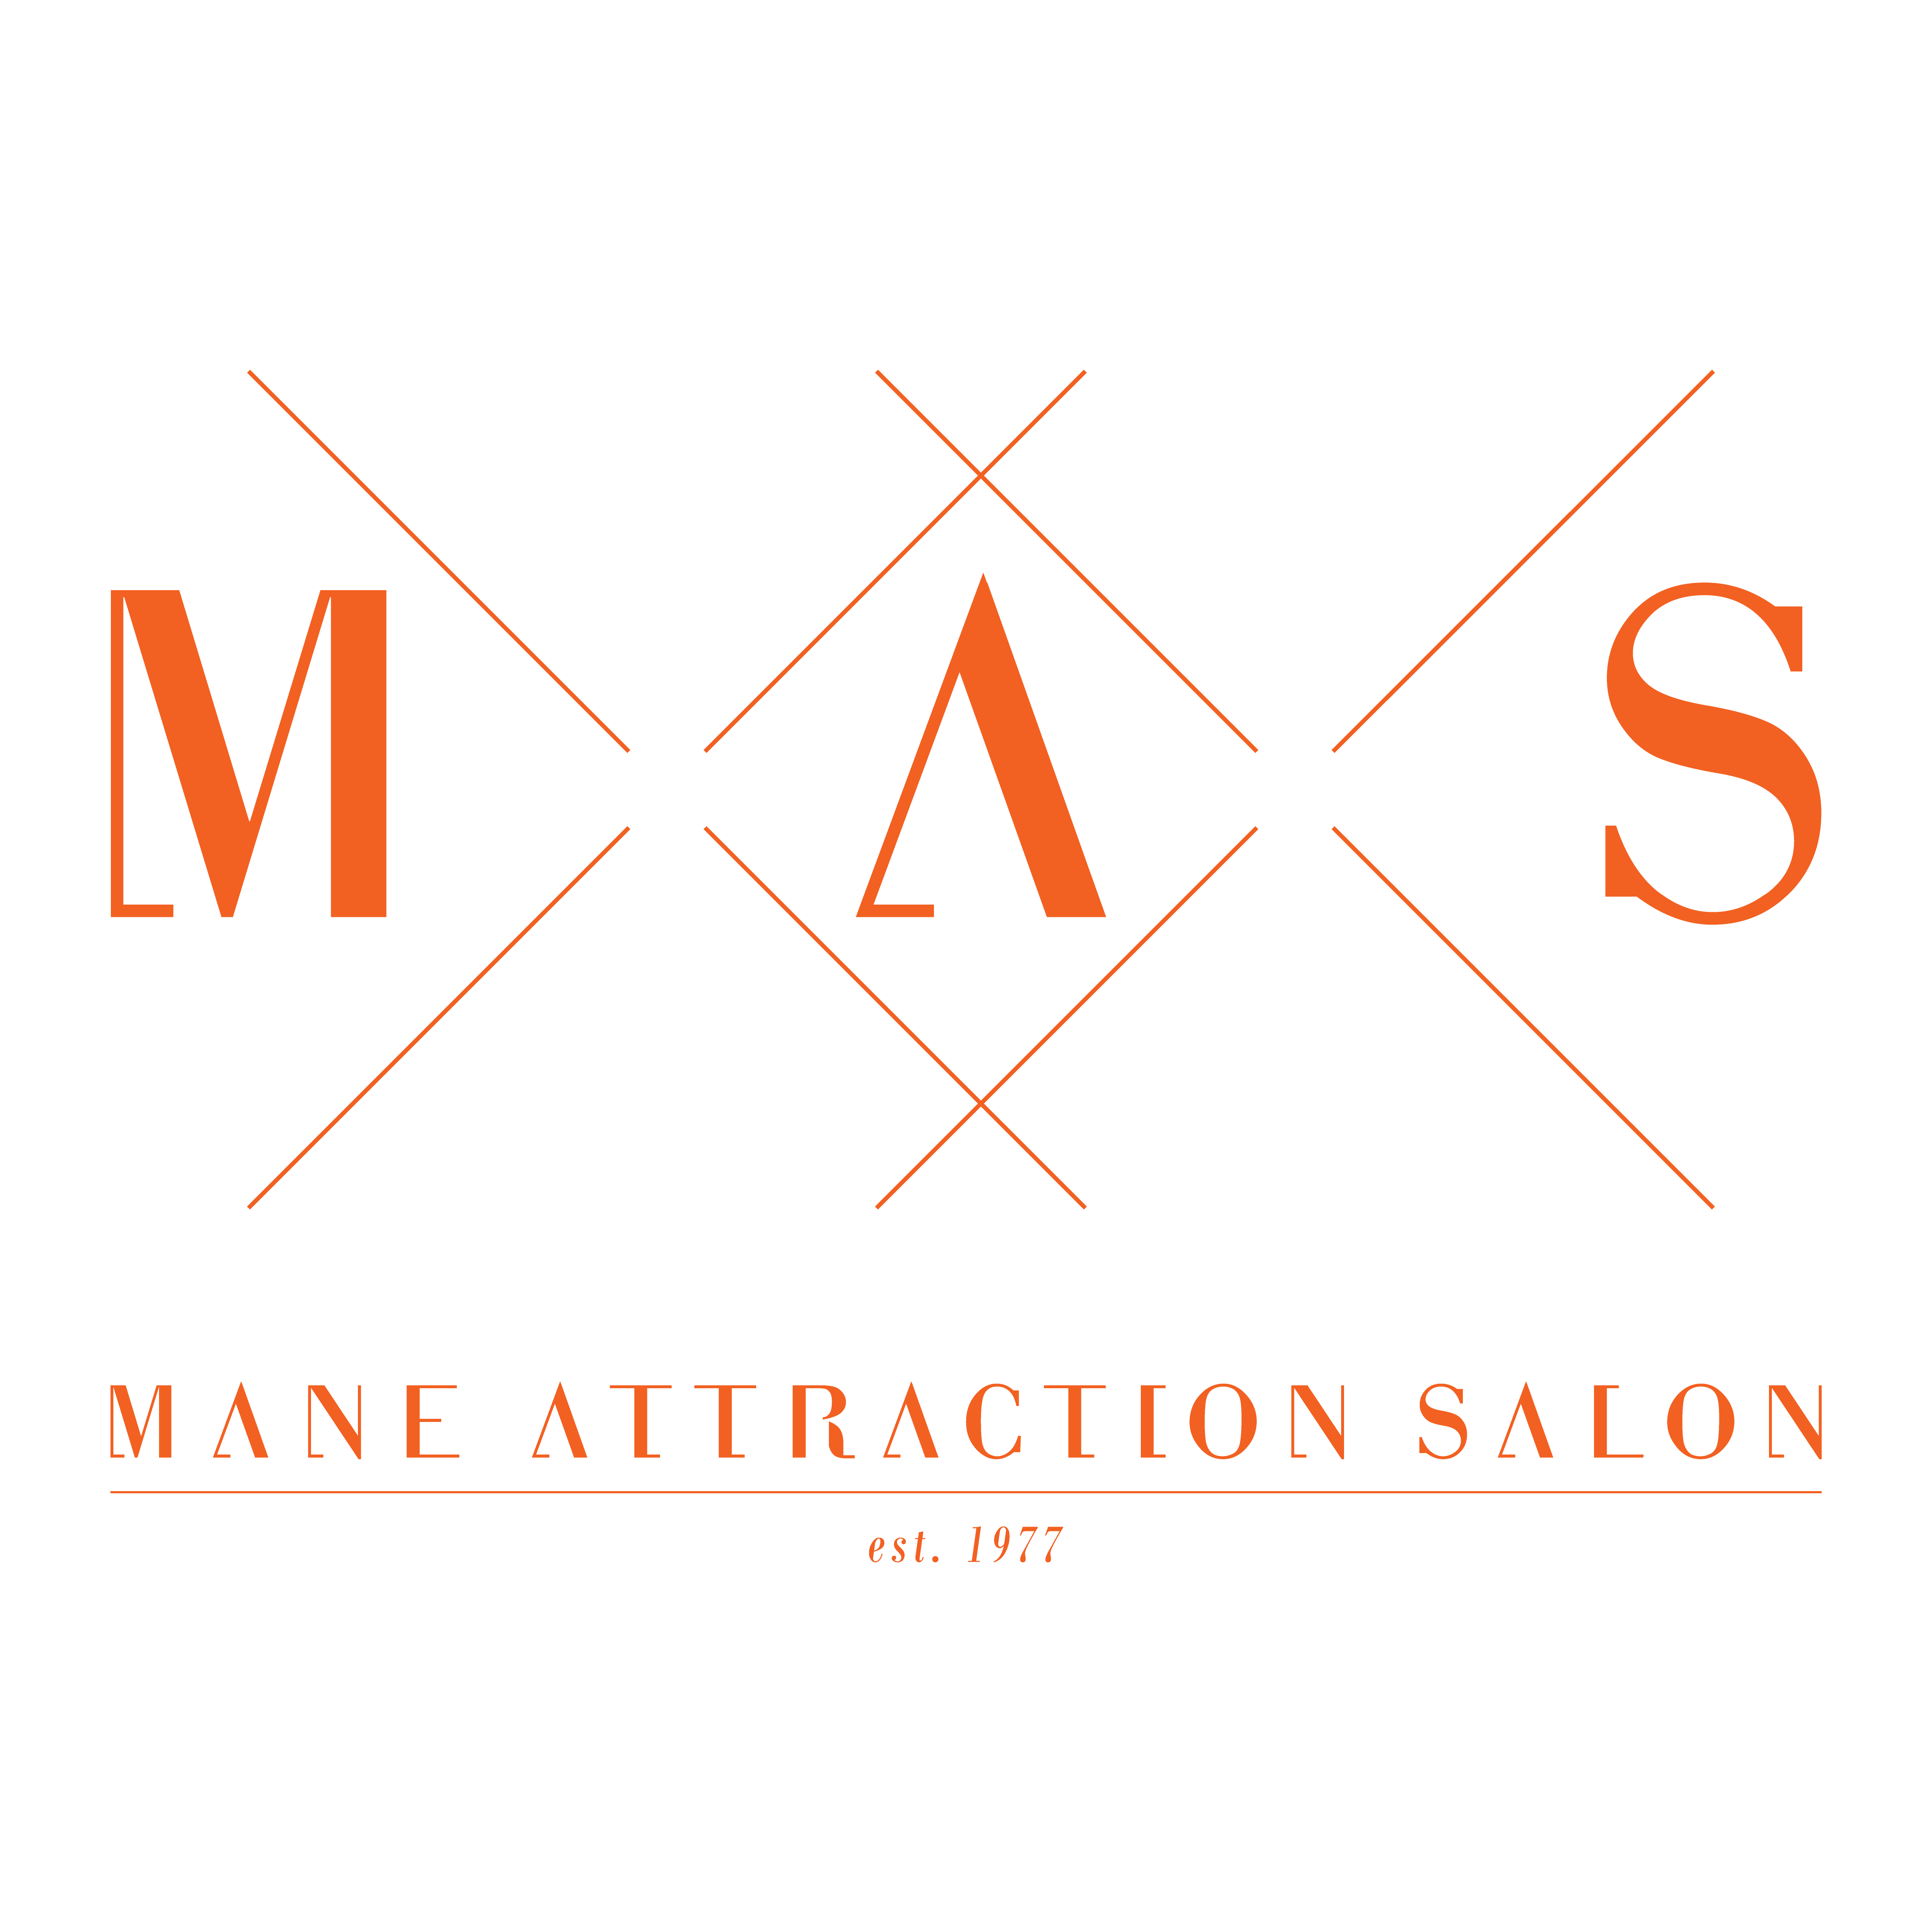 Mane Attraction Salon